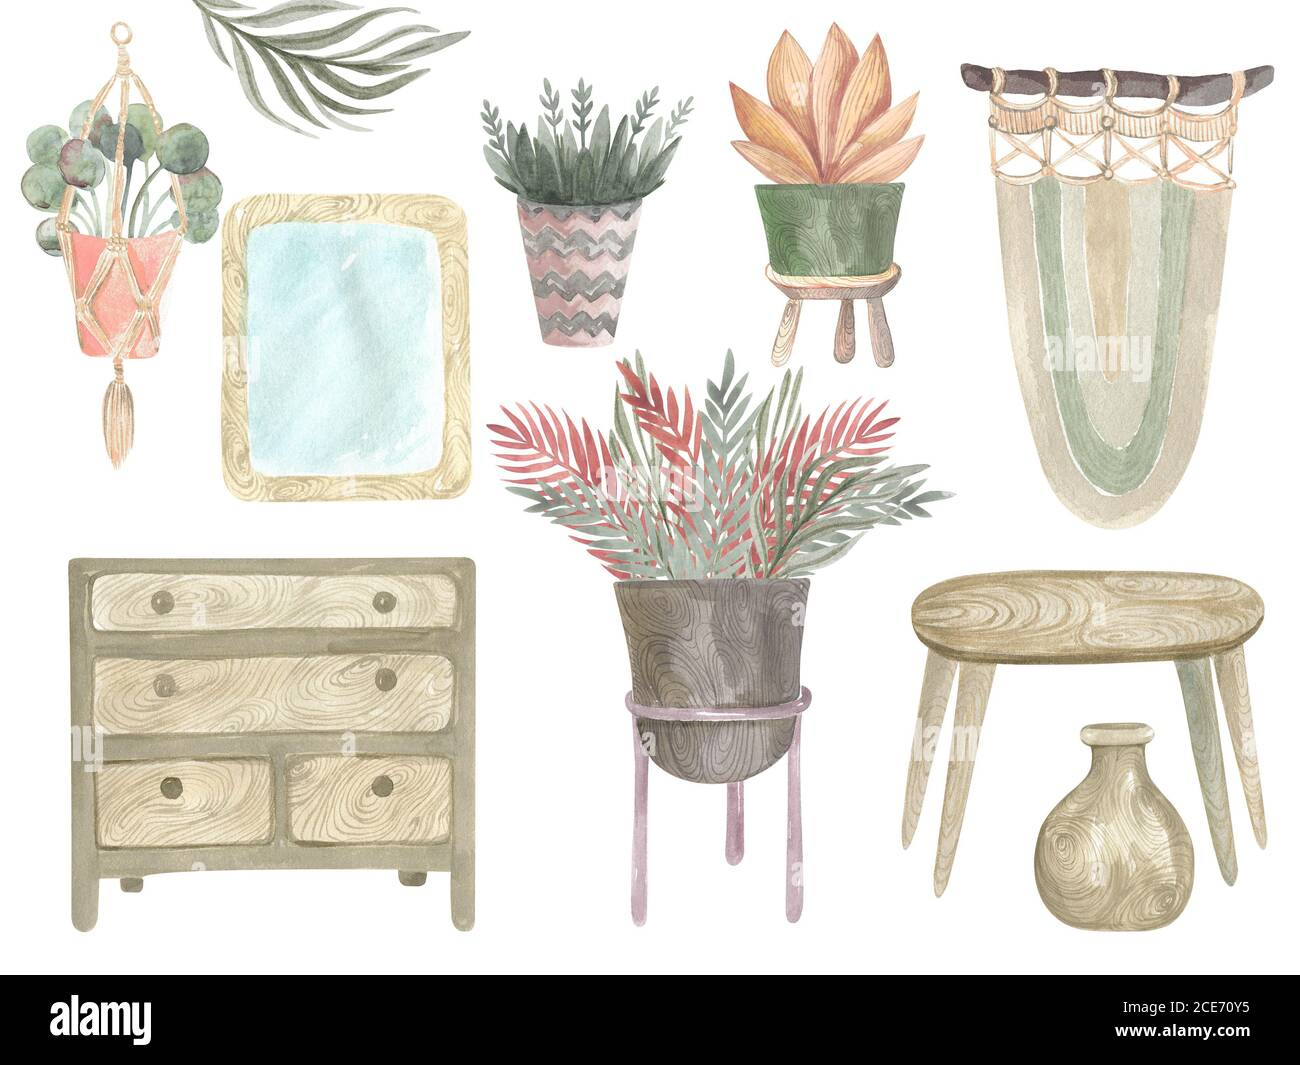 Watercolor Illustration Of Interior Elements In Boho Style Home Decoration Items Set Hand Painted Table Dresser Home Plants Pot Mirror Basket Vase Ma Stock Photo Alamy